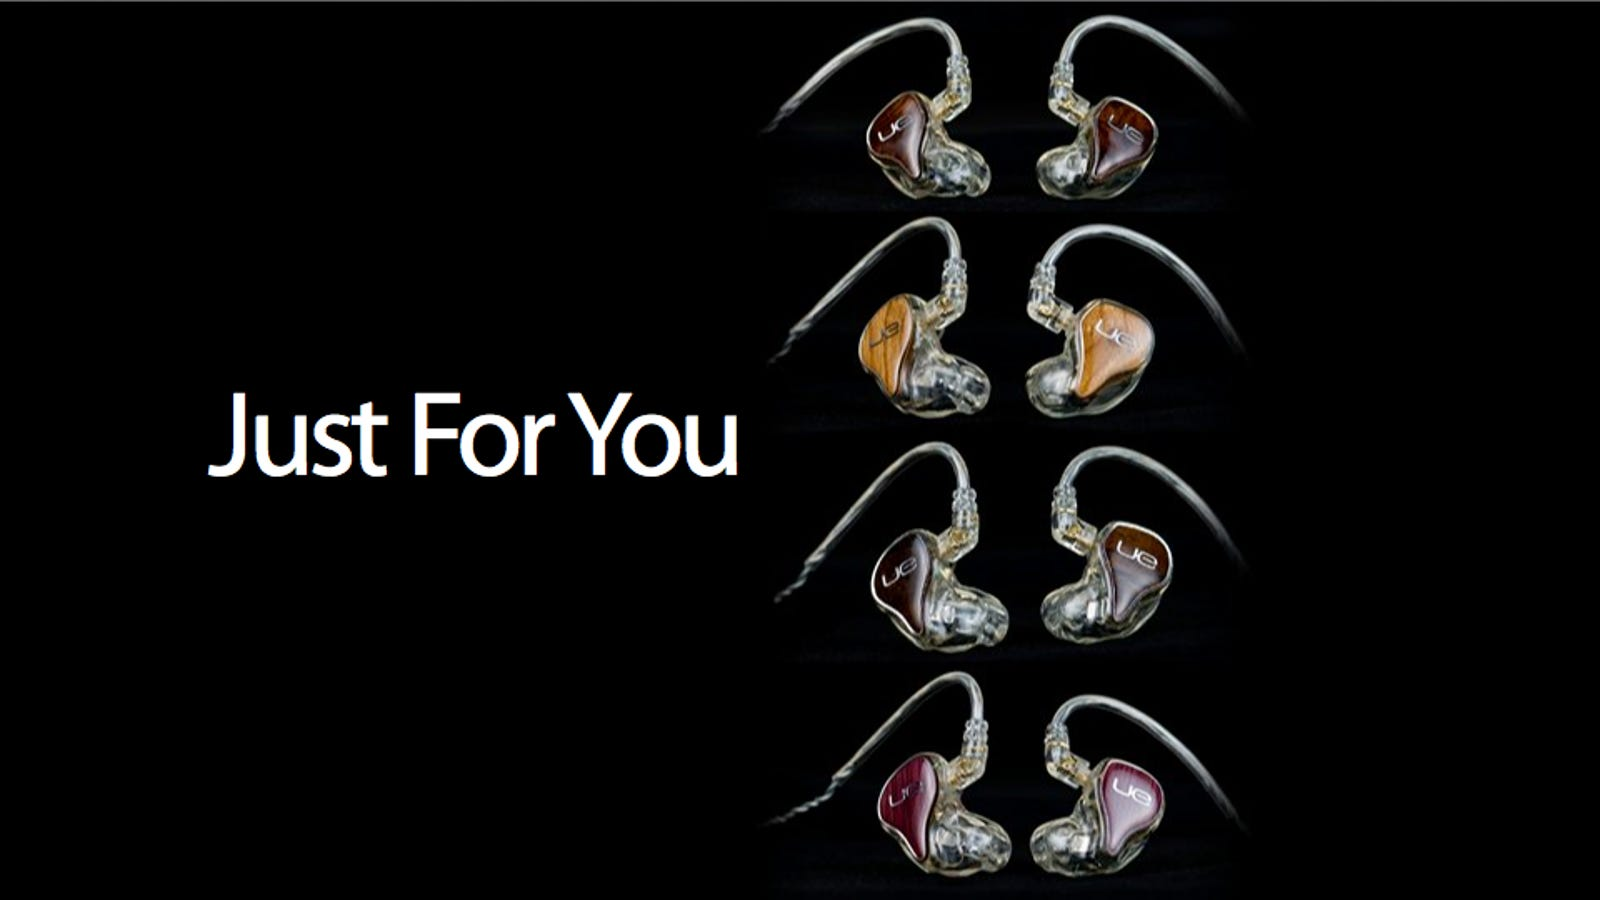 ouzifish premium metal earbuds - $2000 Customizable Earbuds Come With a Personal Sound Coach